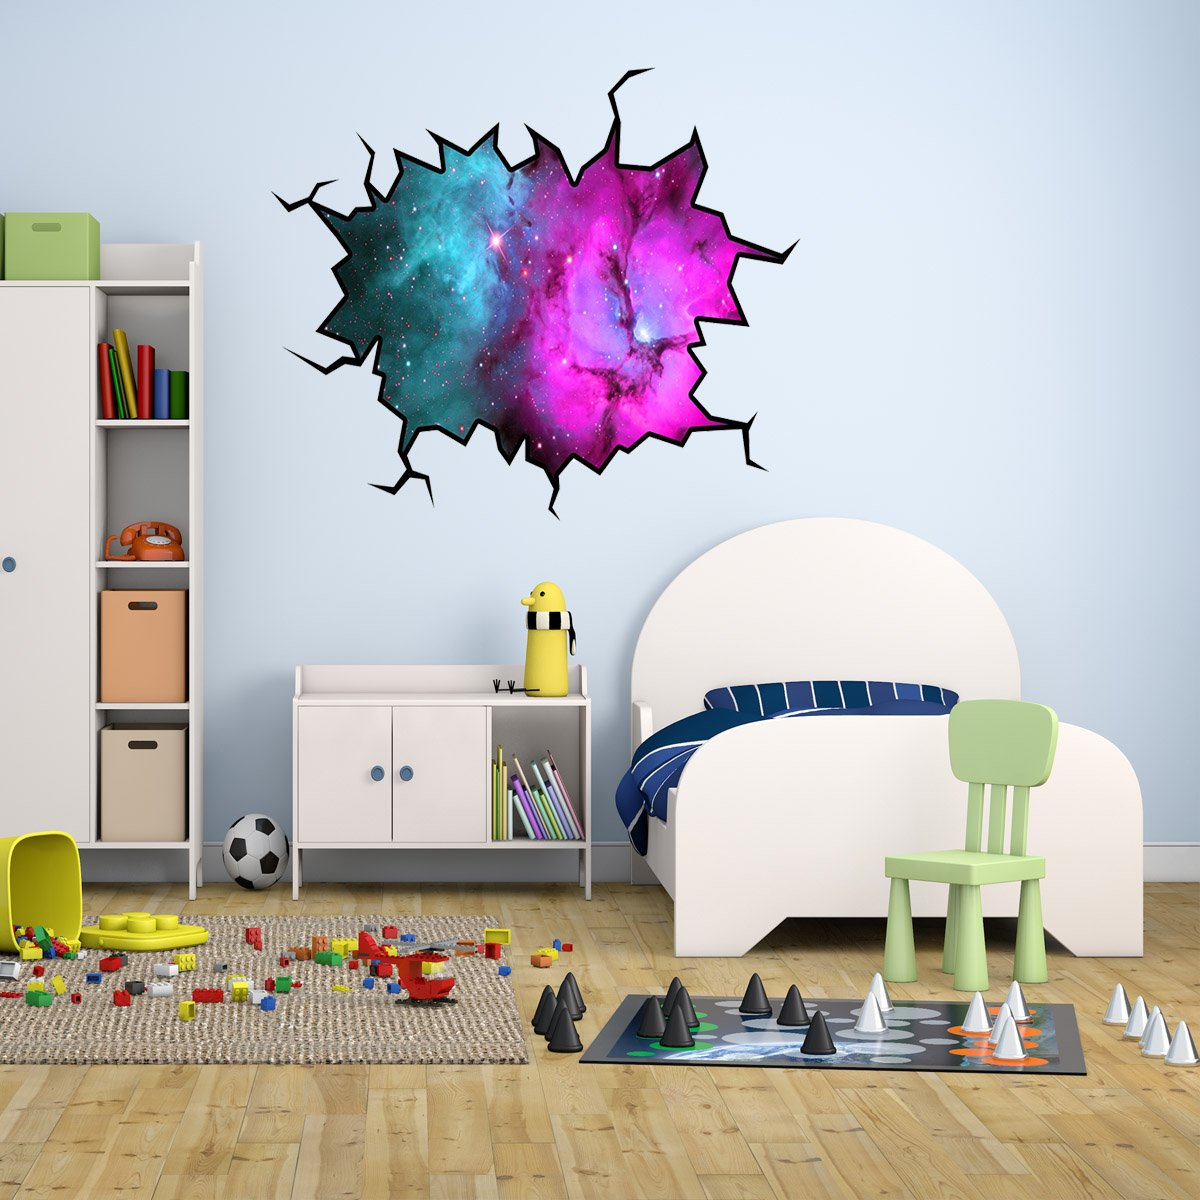 VWAQ Outer Space Wall Crack Galaxy Nebula Peel & Stick Removable Wall Decal (VWAQ-WC10)